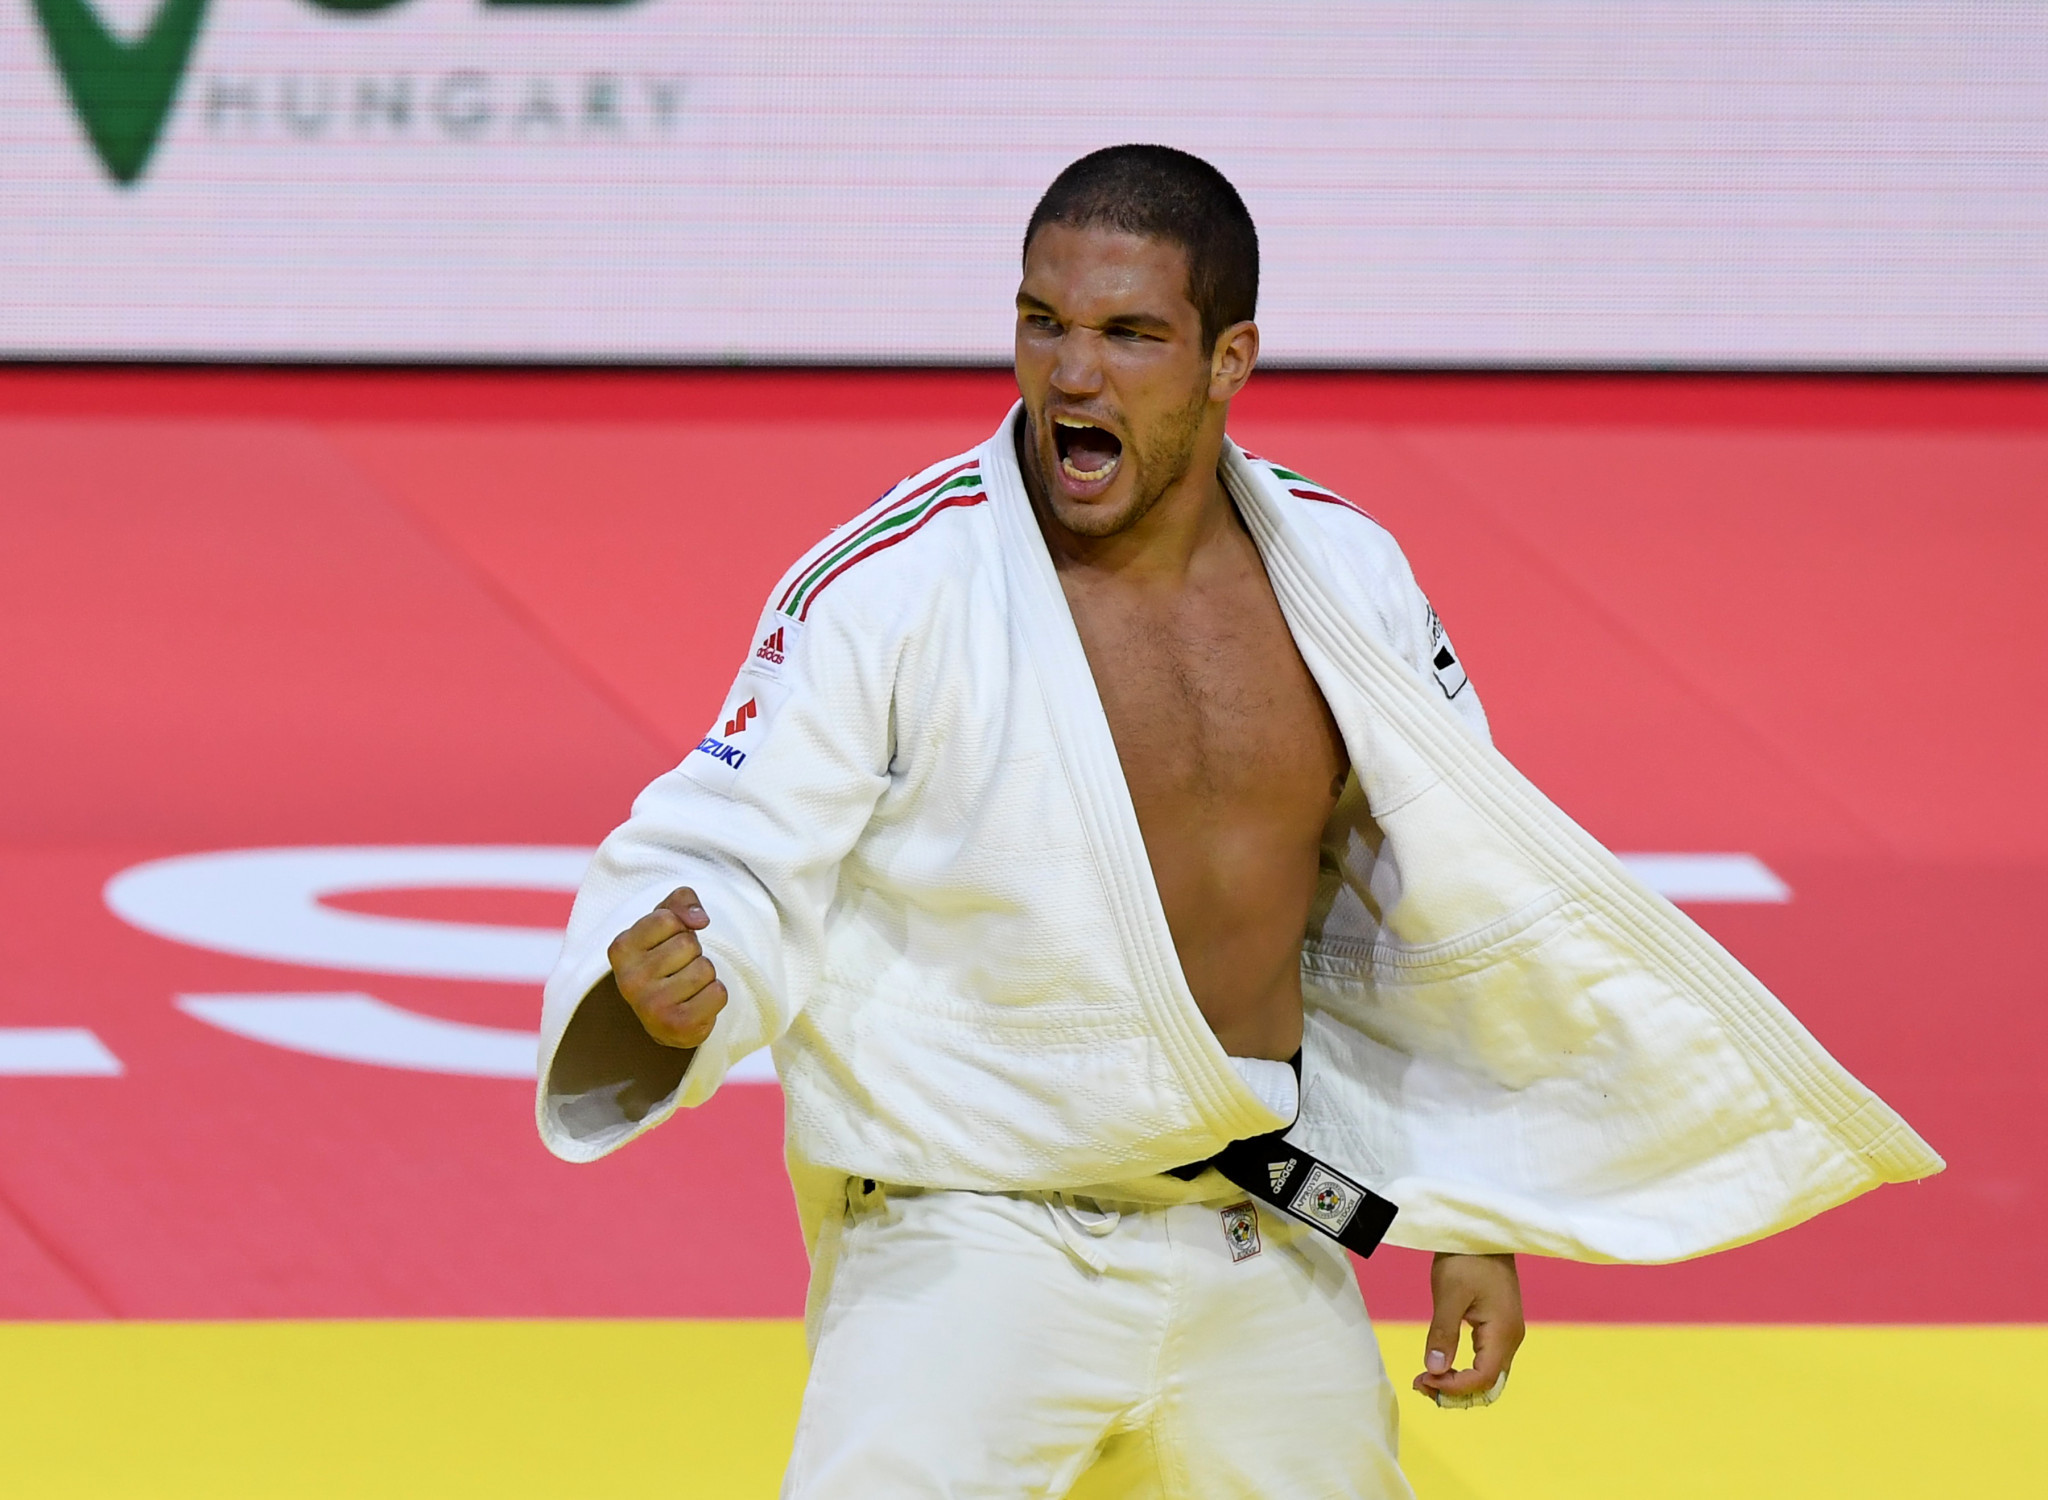 Krisztian Toth won one of Hungary's two gold medals on the final day of competition ©Getty Images